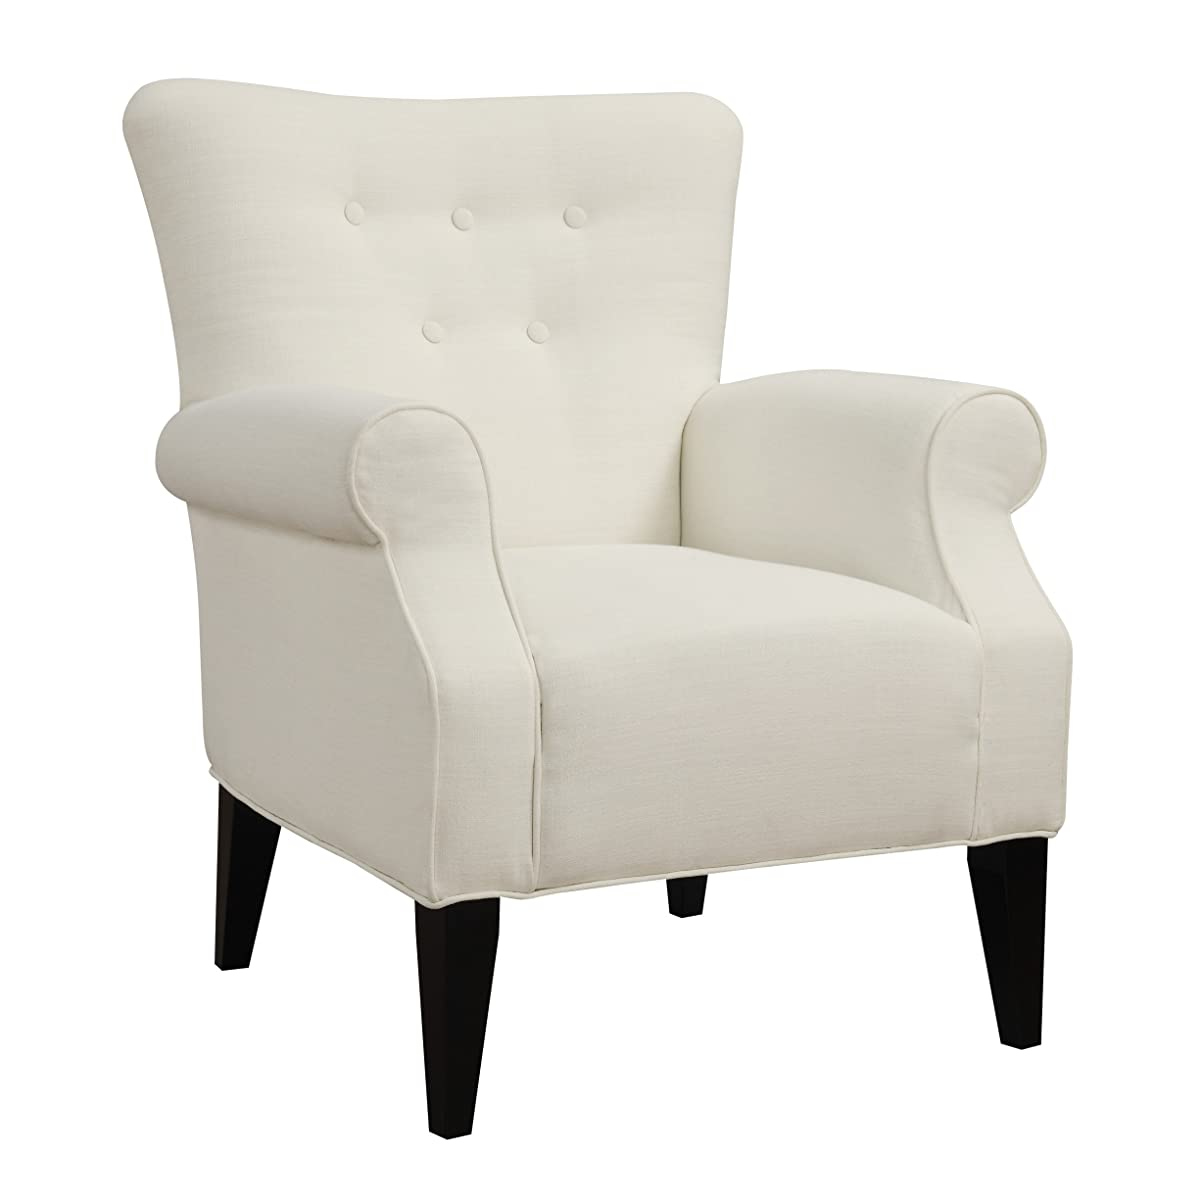 Emerald Home Lydia Snow Accent Chair with Button Tufting And Roll Arms